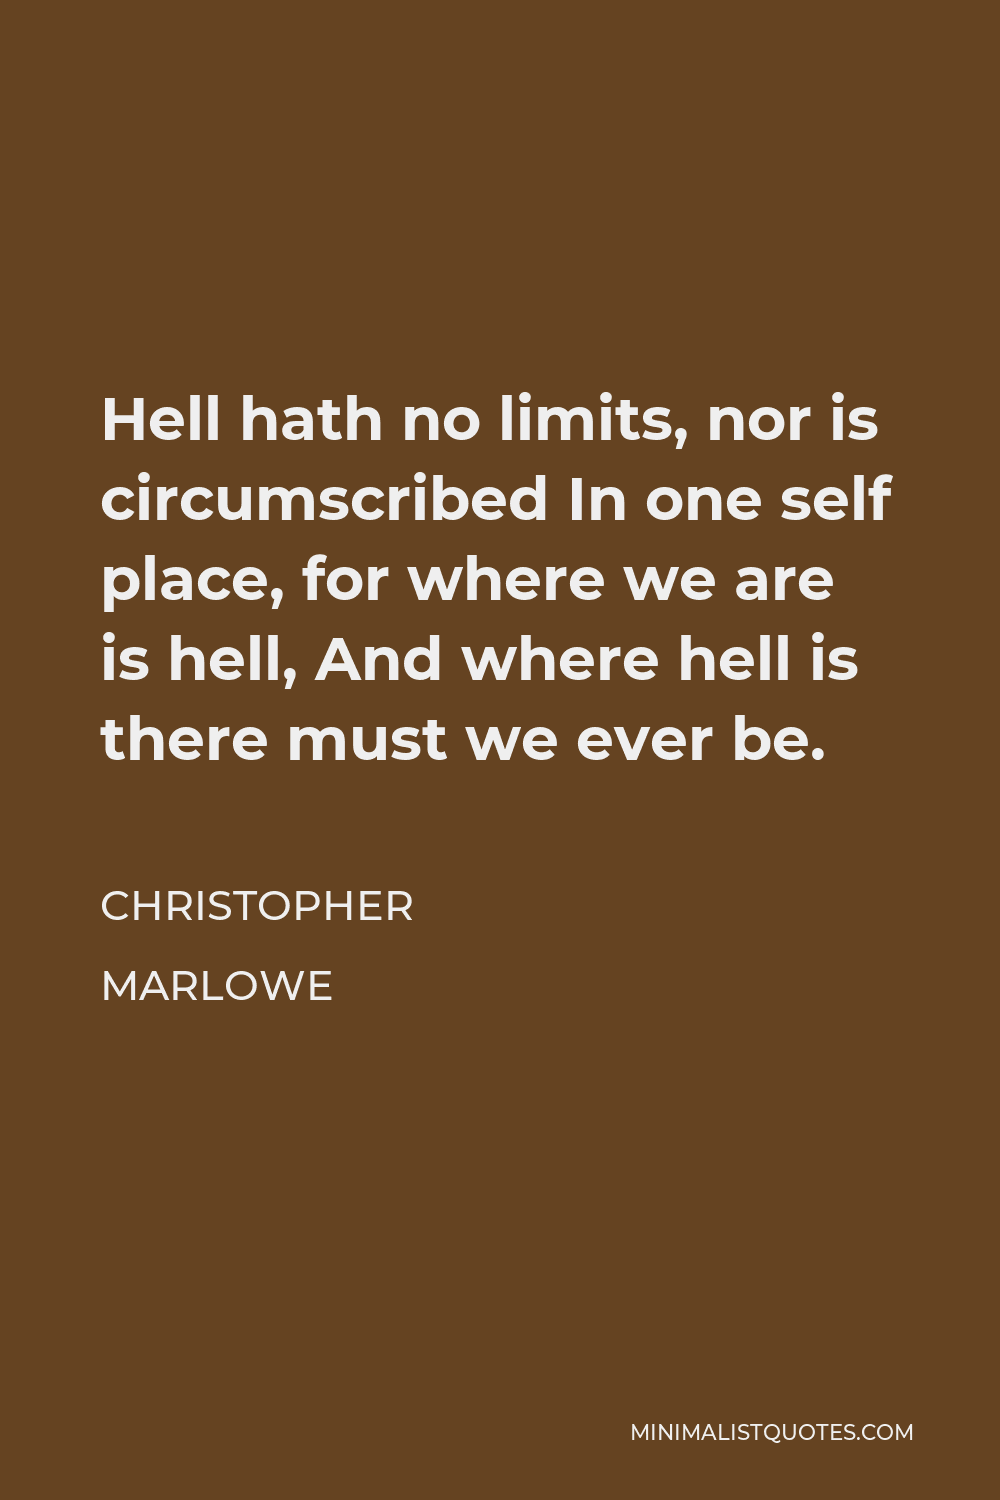 Christopher Marlowe Quote - Hell hath no limits, nor is circumscribed In one self place, for where we are is hell, And where hell is there must we ever be.